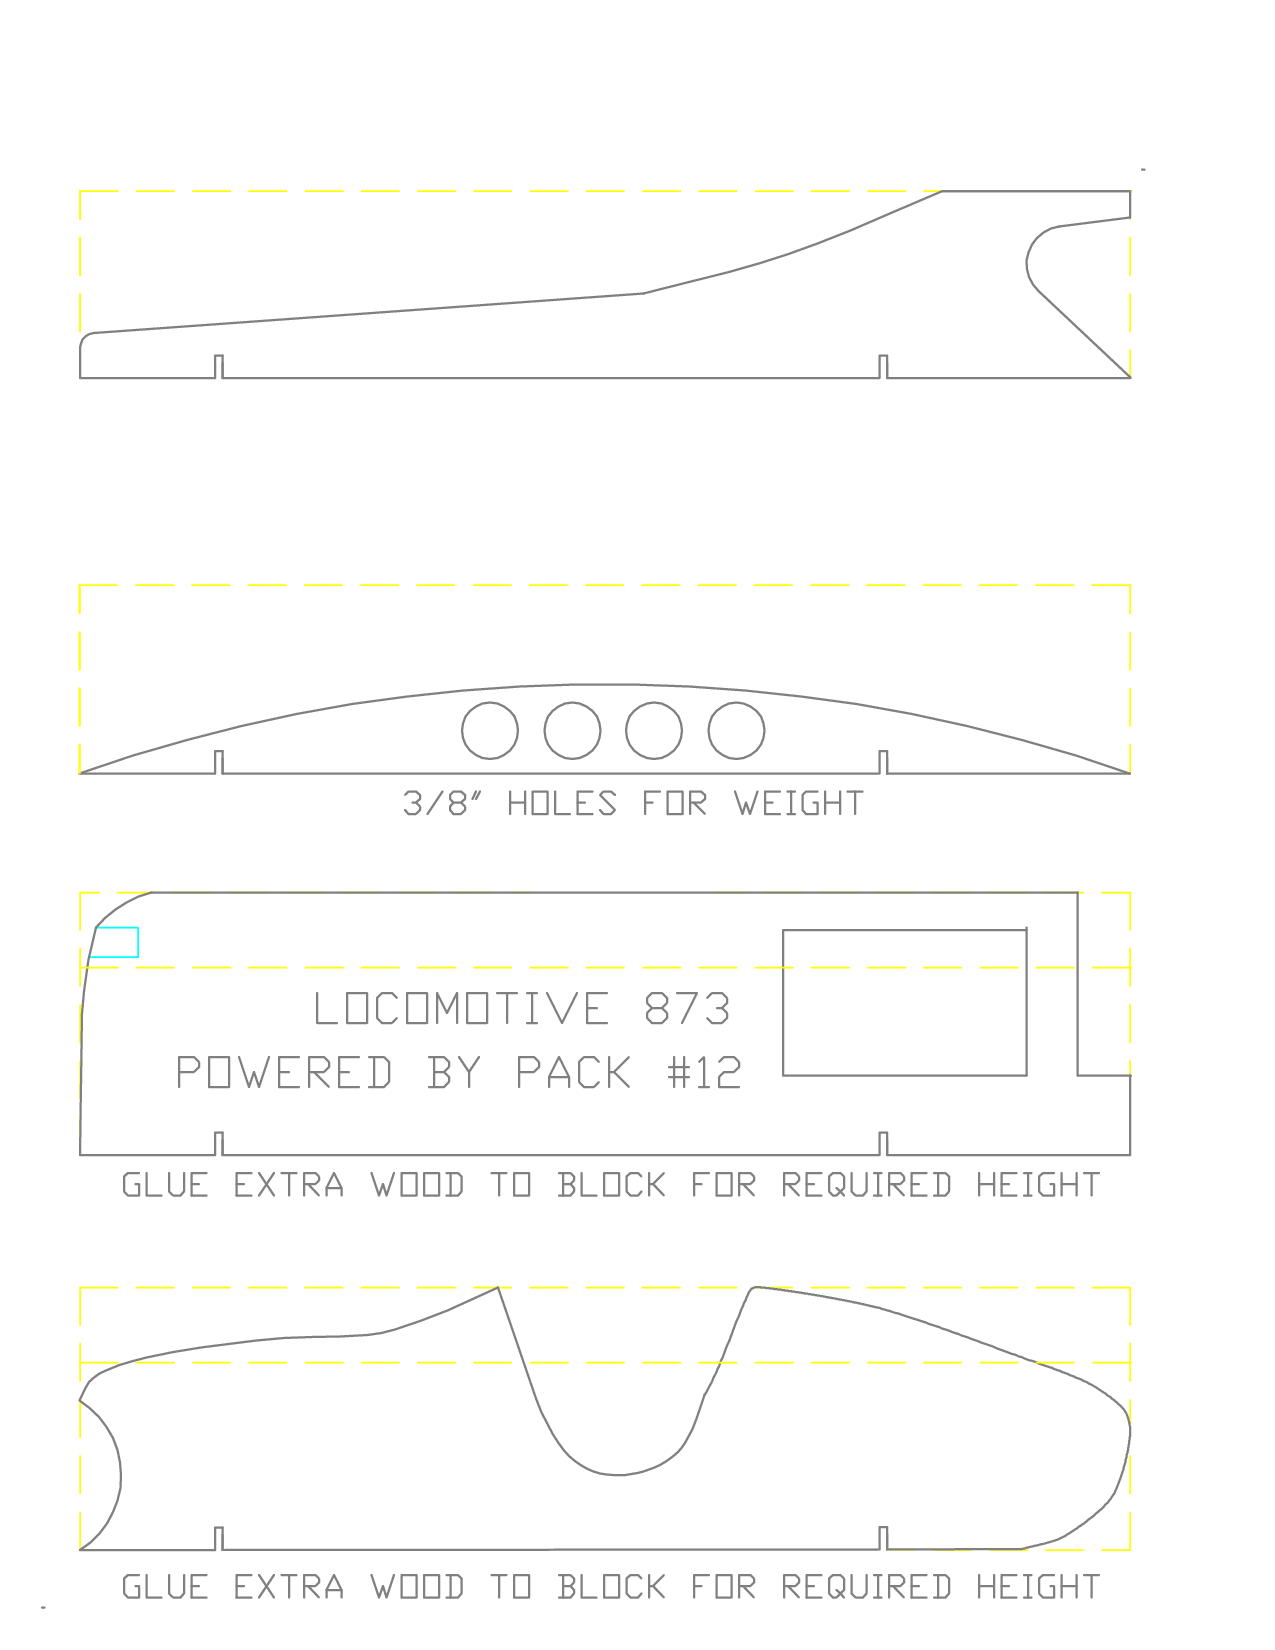 boy scouts pinewood derby templates - pinewood derby templates printable pinewood derby car